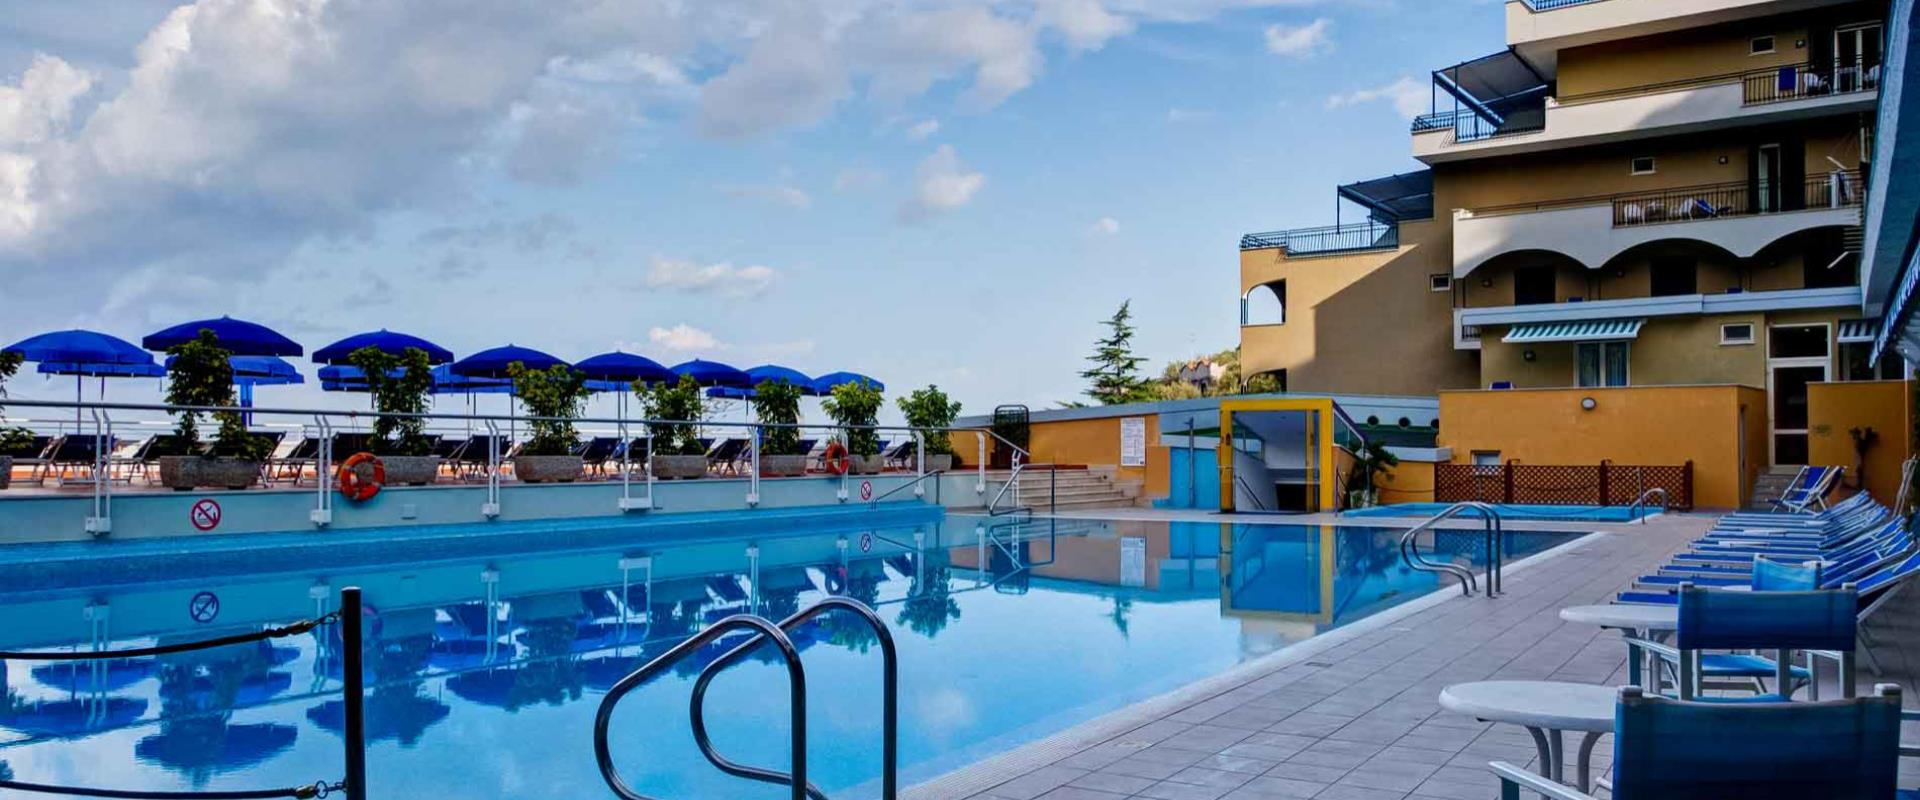 Book a stay in a beaufiful 4 star hotel in Sorrento and enjoy our services.